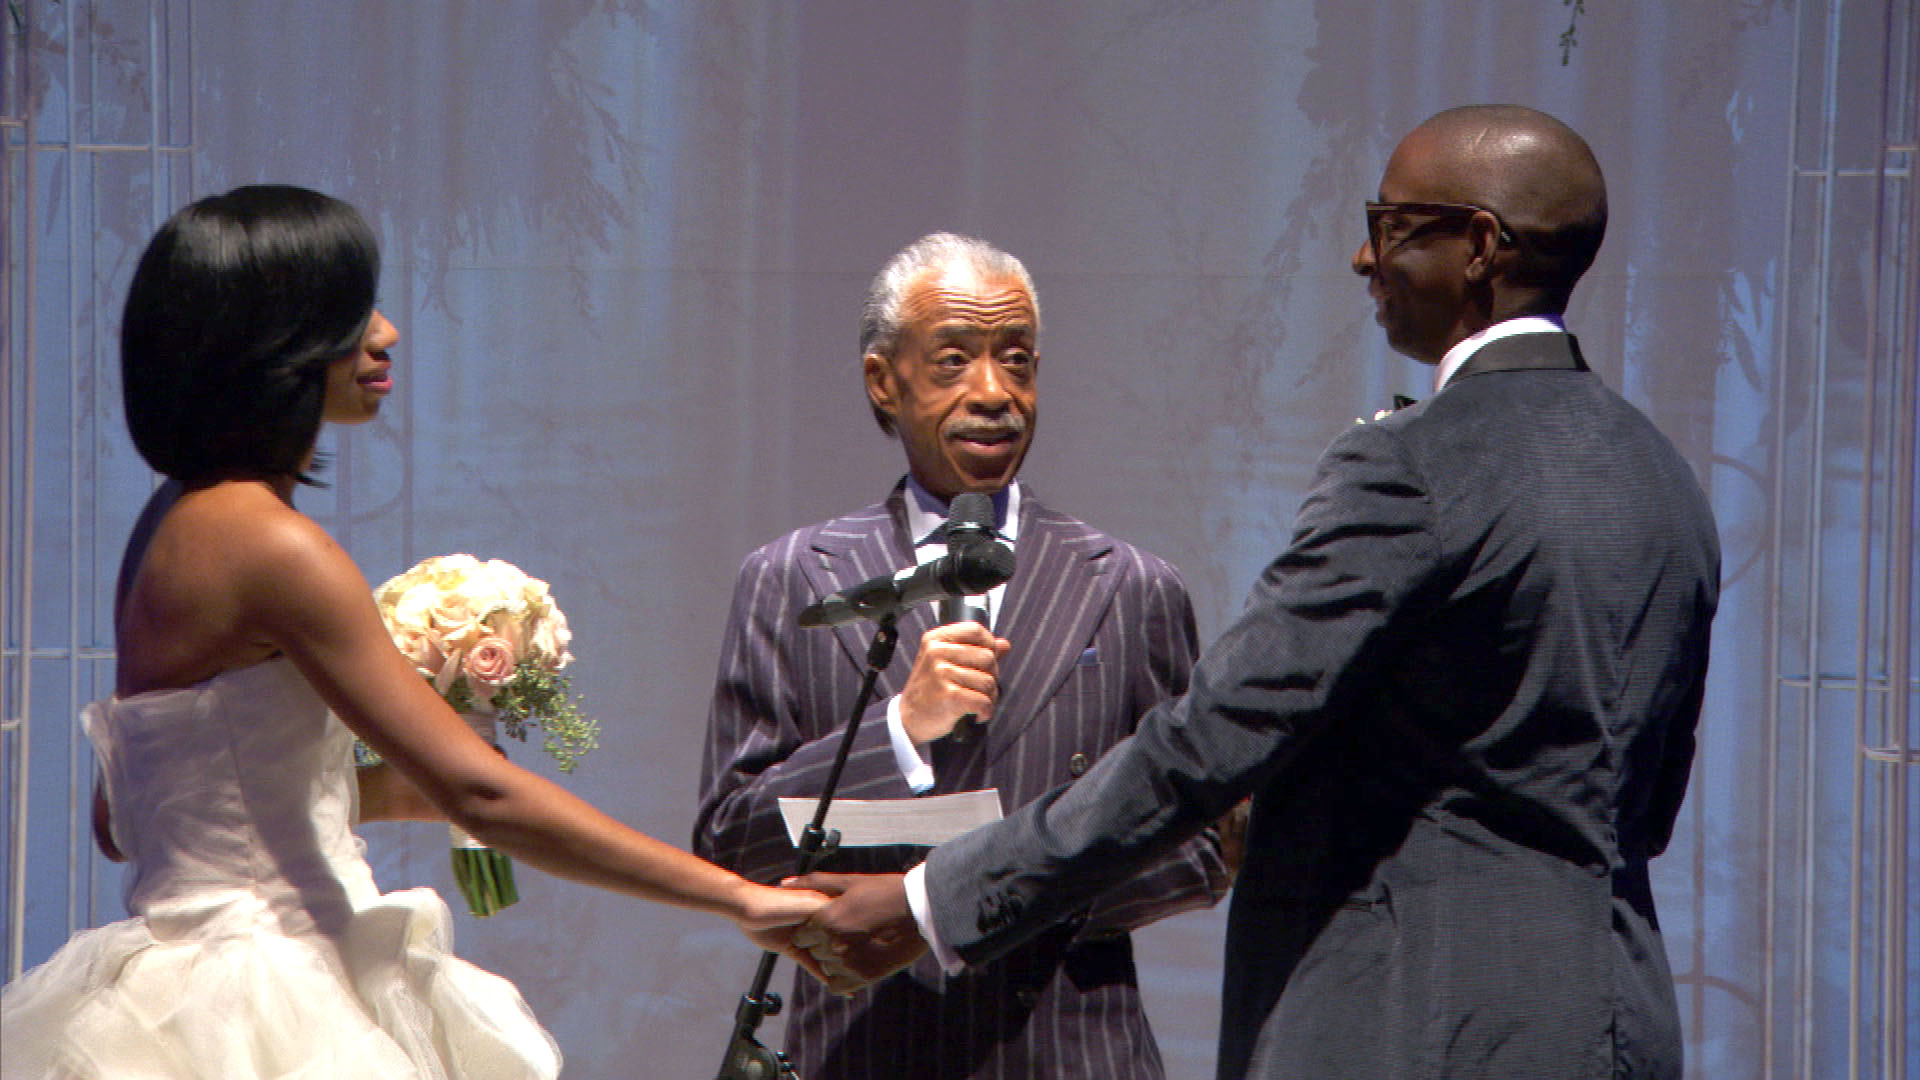 Surprise! It's Reverend Al Sharpton!